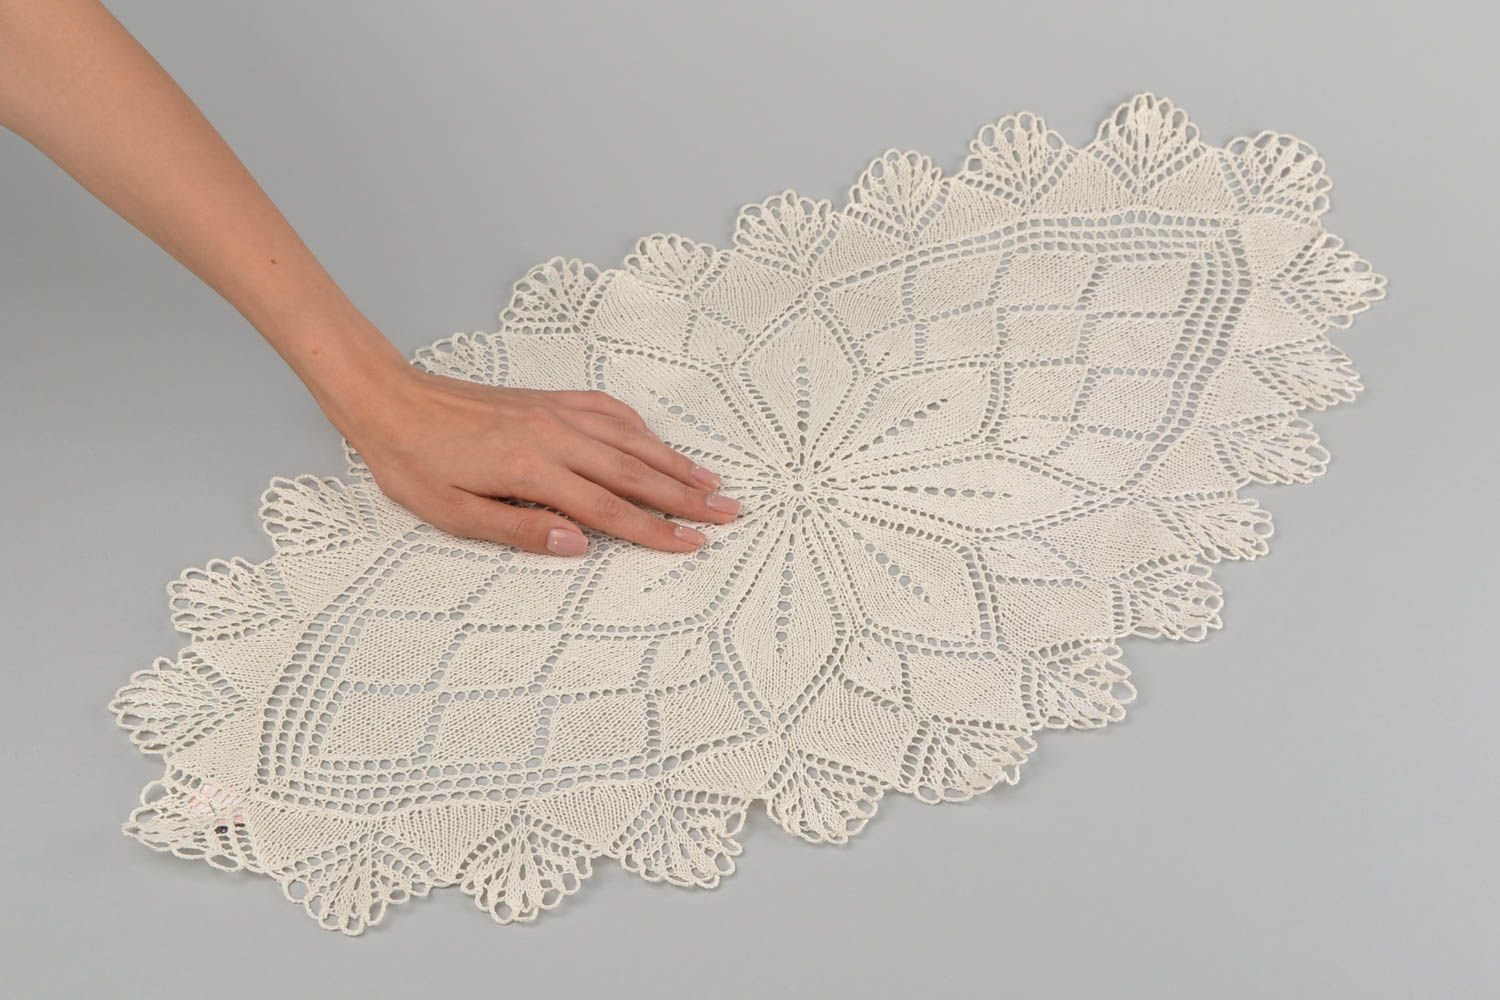 textiles and carpets Handmade knitted napkin decorative lace napkin for coffee table interior ideas - MADEheart.com